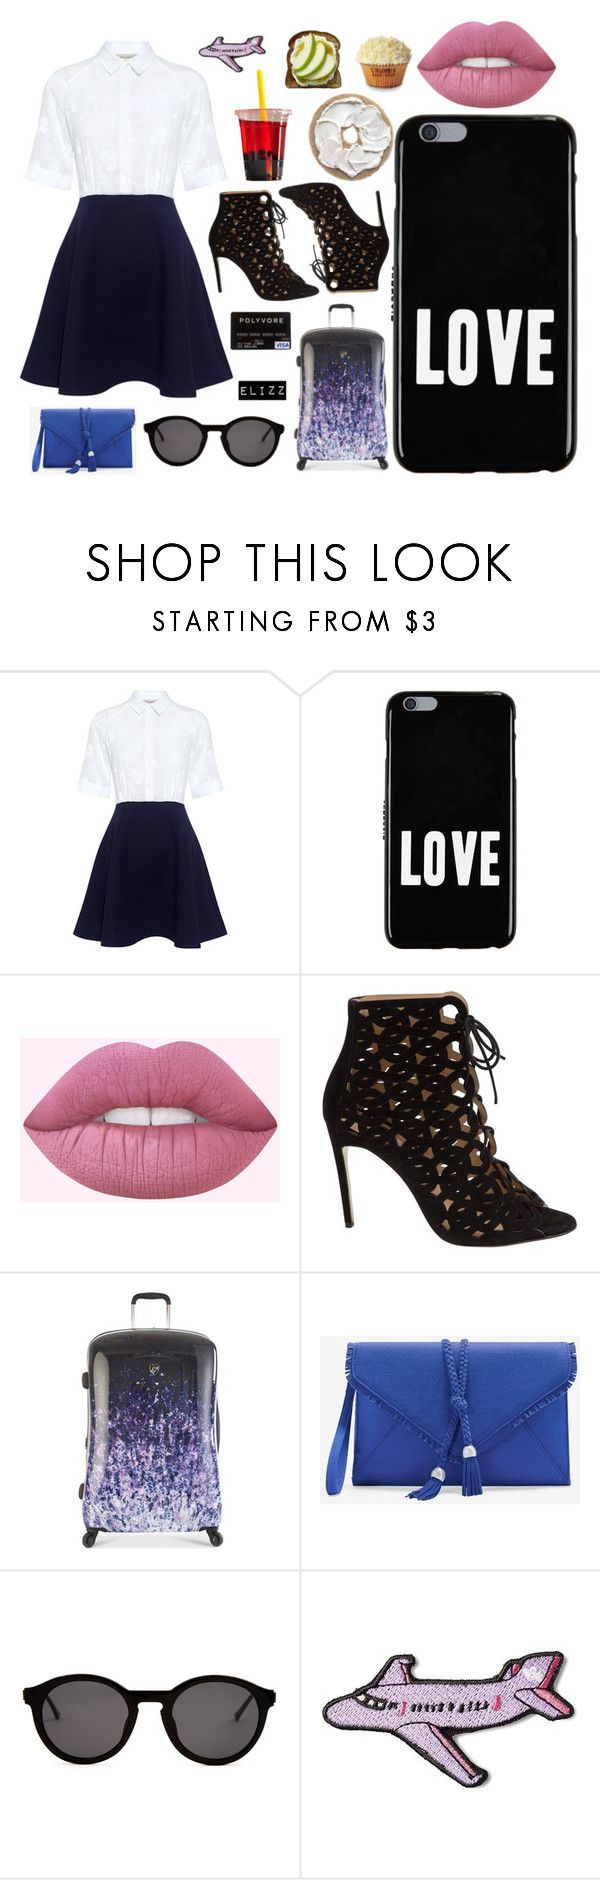 """Better Then KIm"" by elizz-denne on Polyvore featuring Paul & Joe Sister, Givenchy, Bionda Castana, Heys, White House Black Market, Thierry Lasry and Stoney Clover Lane"